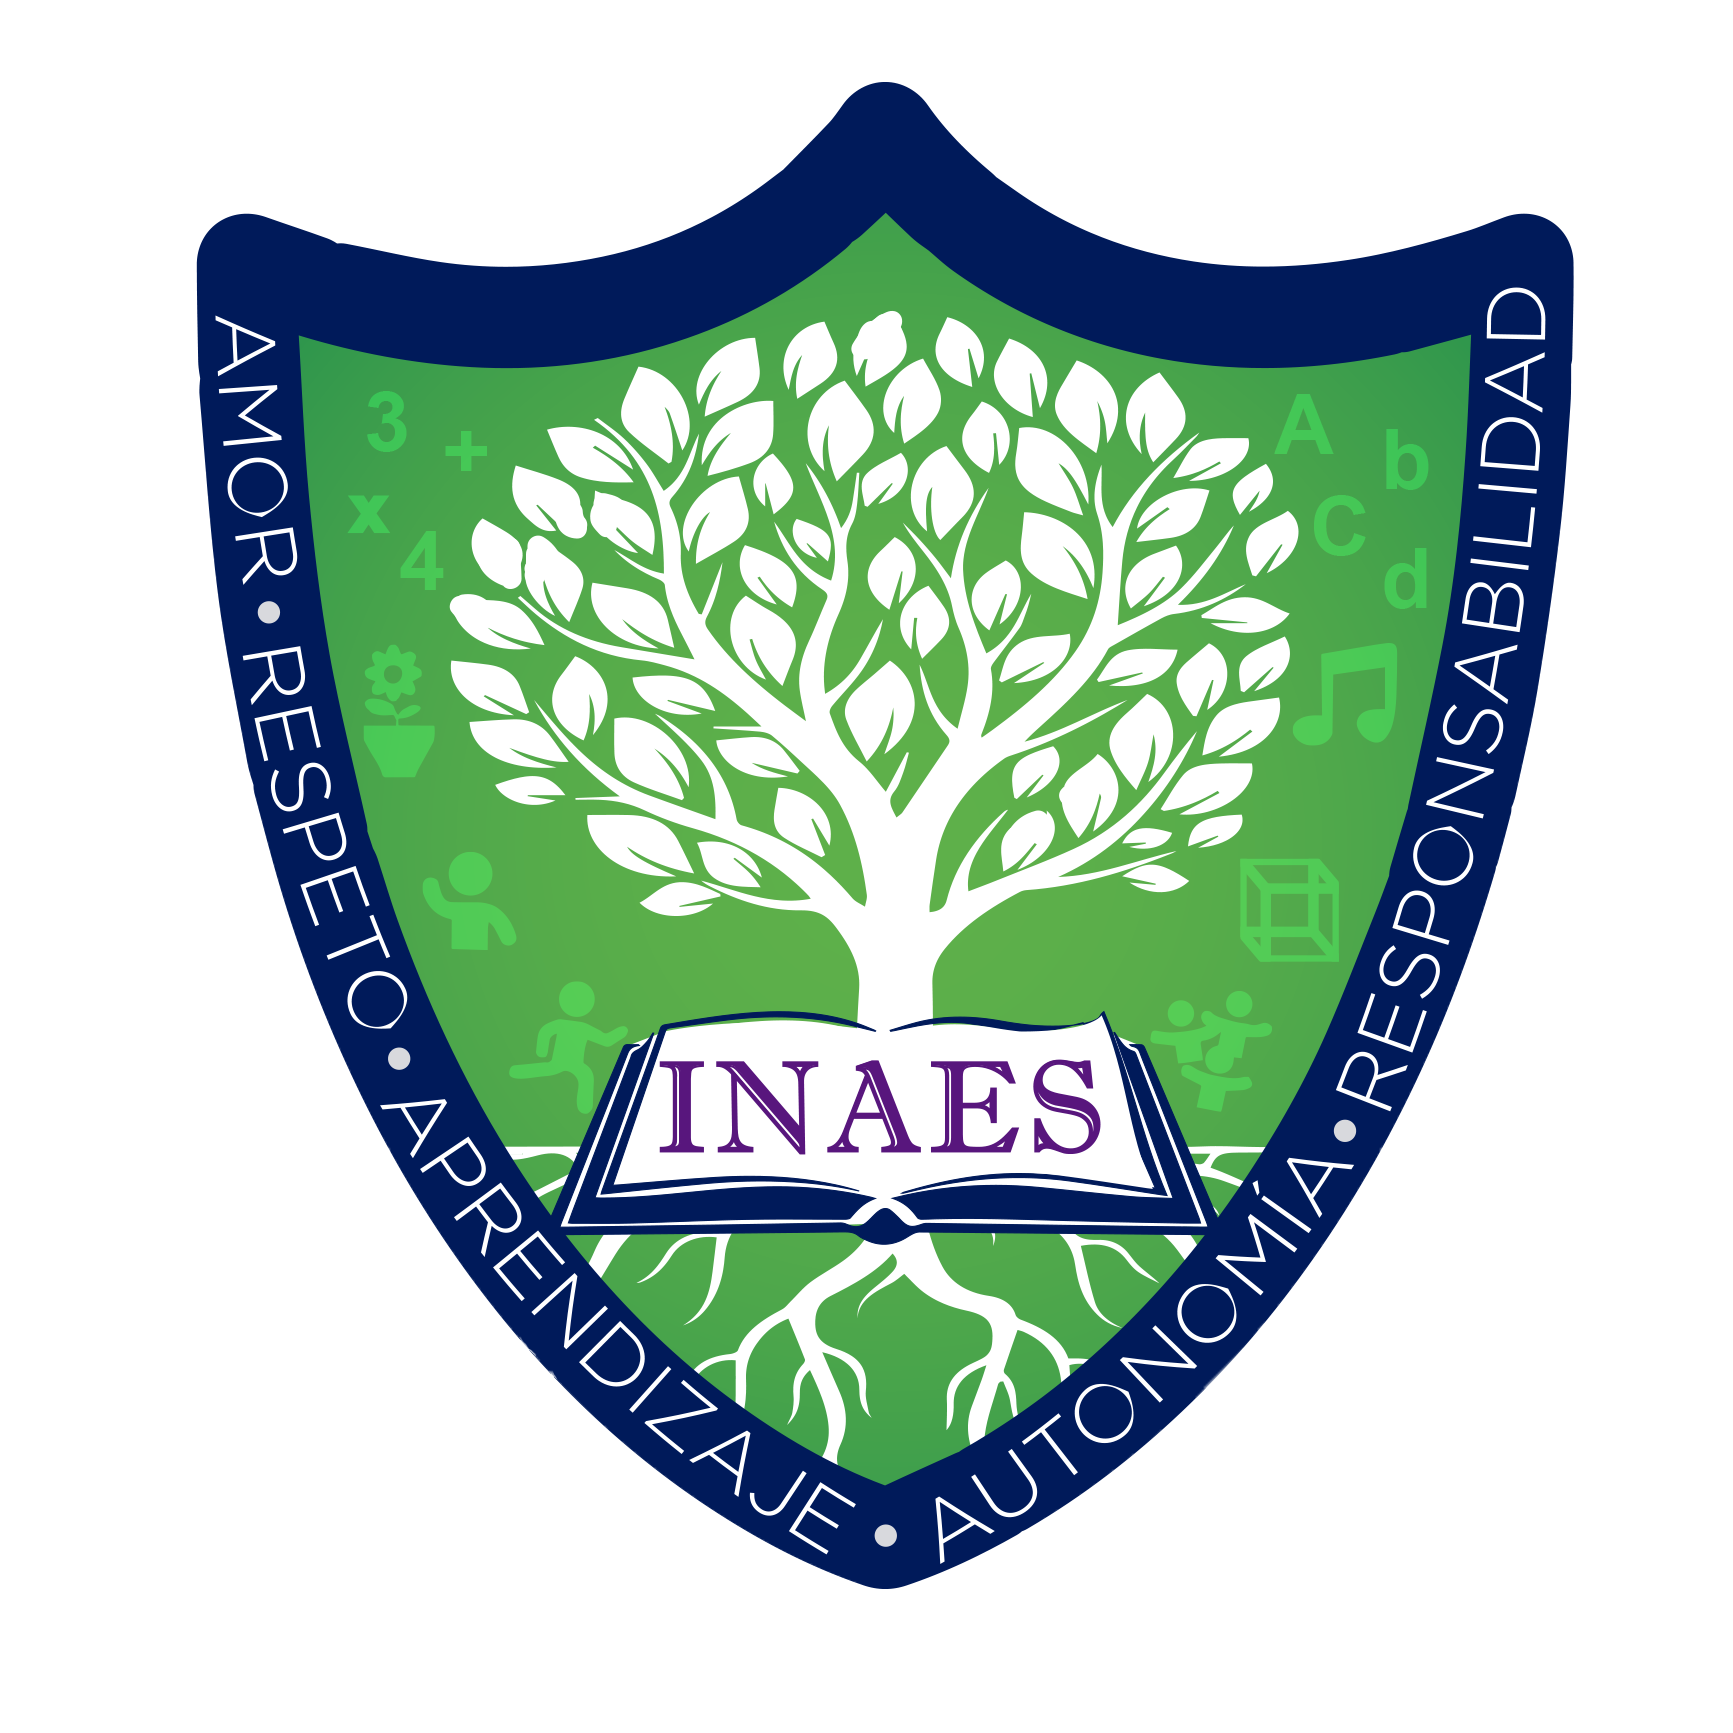 Logo-Inaes-col-1-1-1-1-1-1-1-1-1-1-1.png